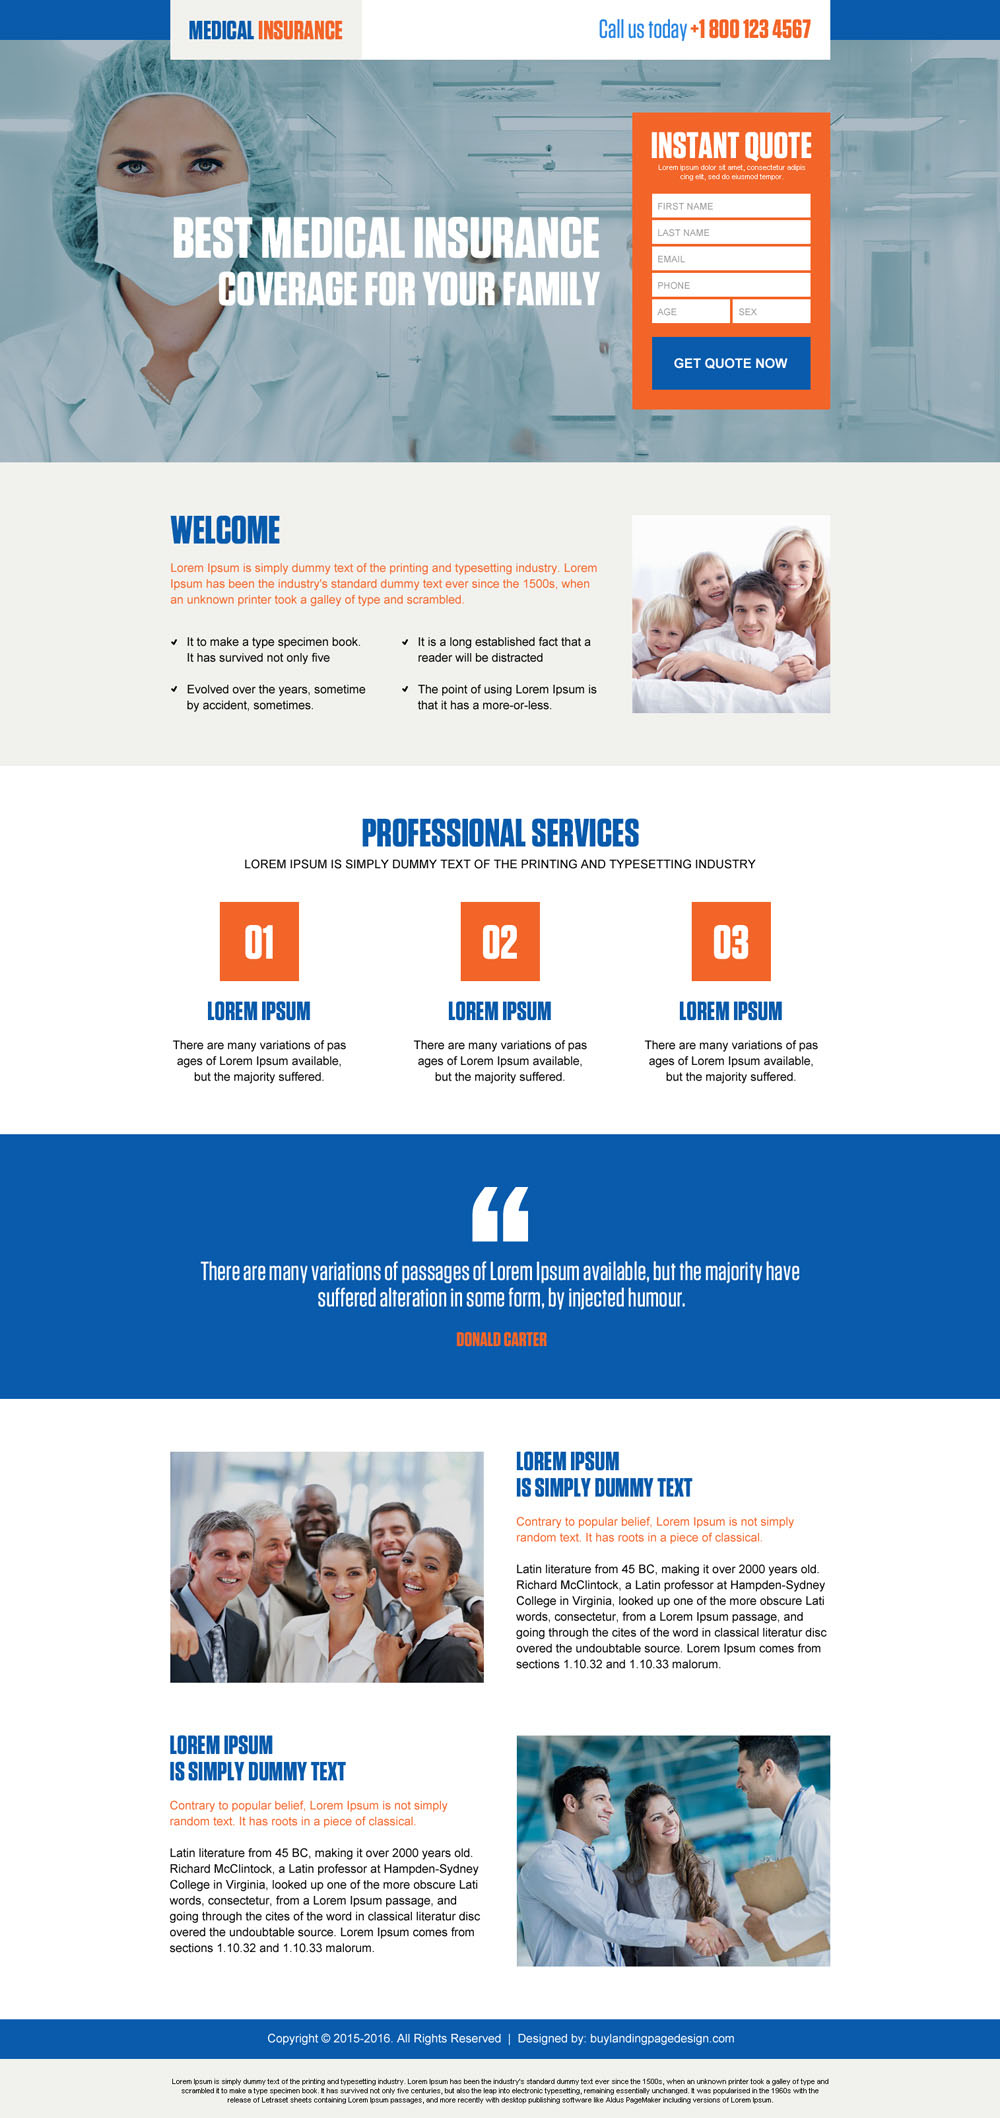 best-medical-insurance-for-family-free-quote-converting-landing-page-design-003